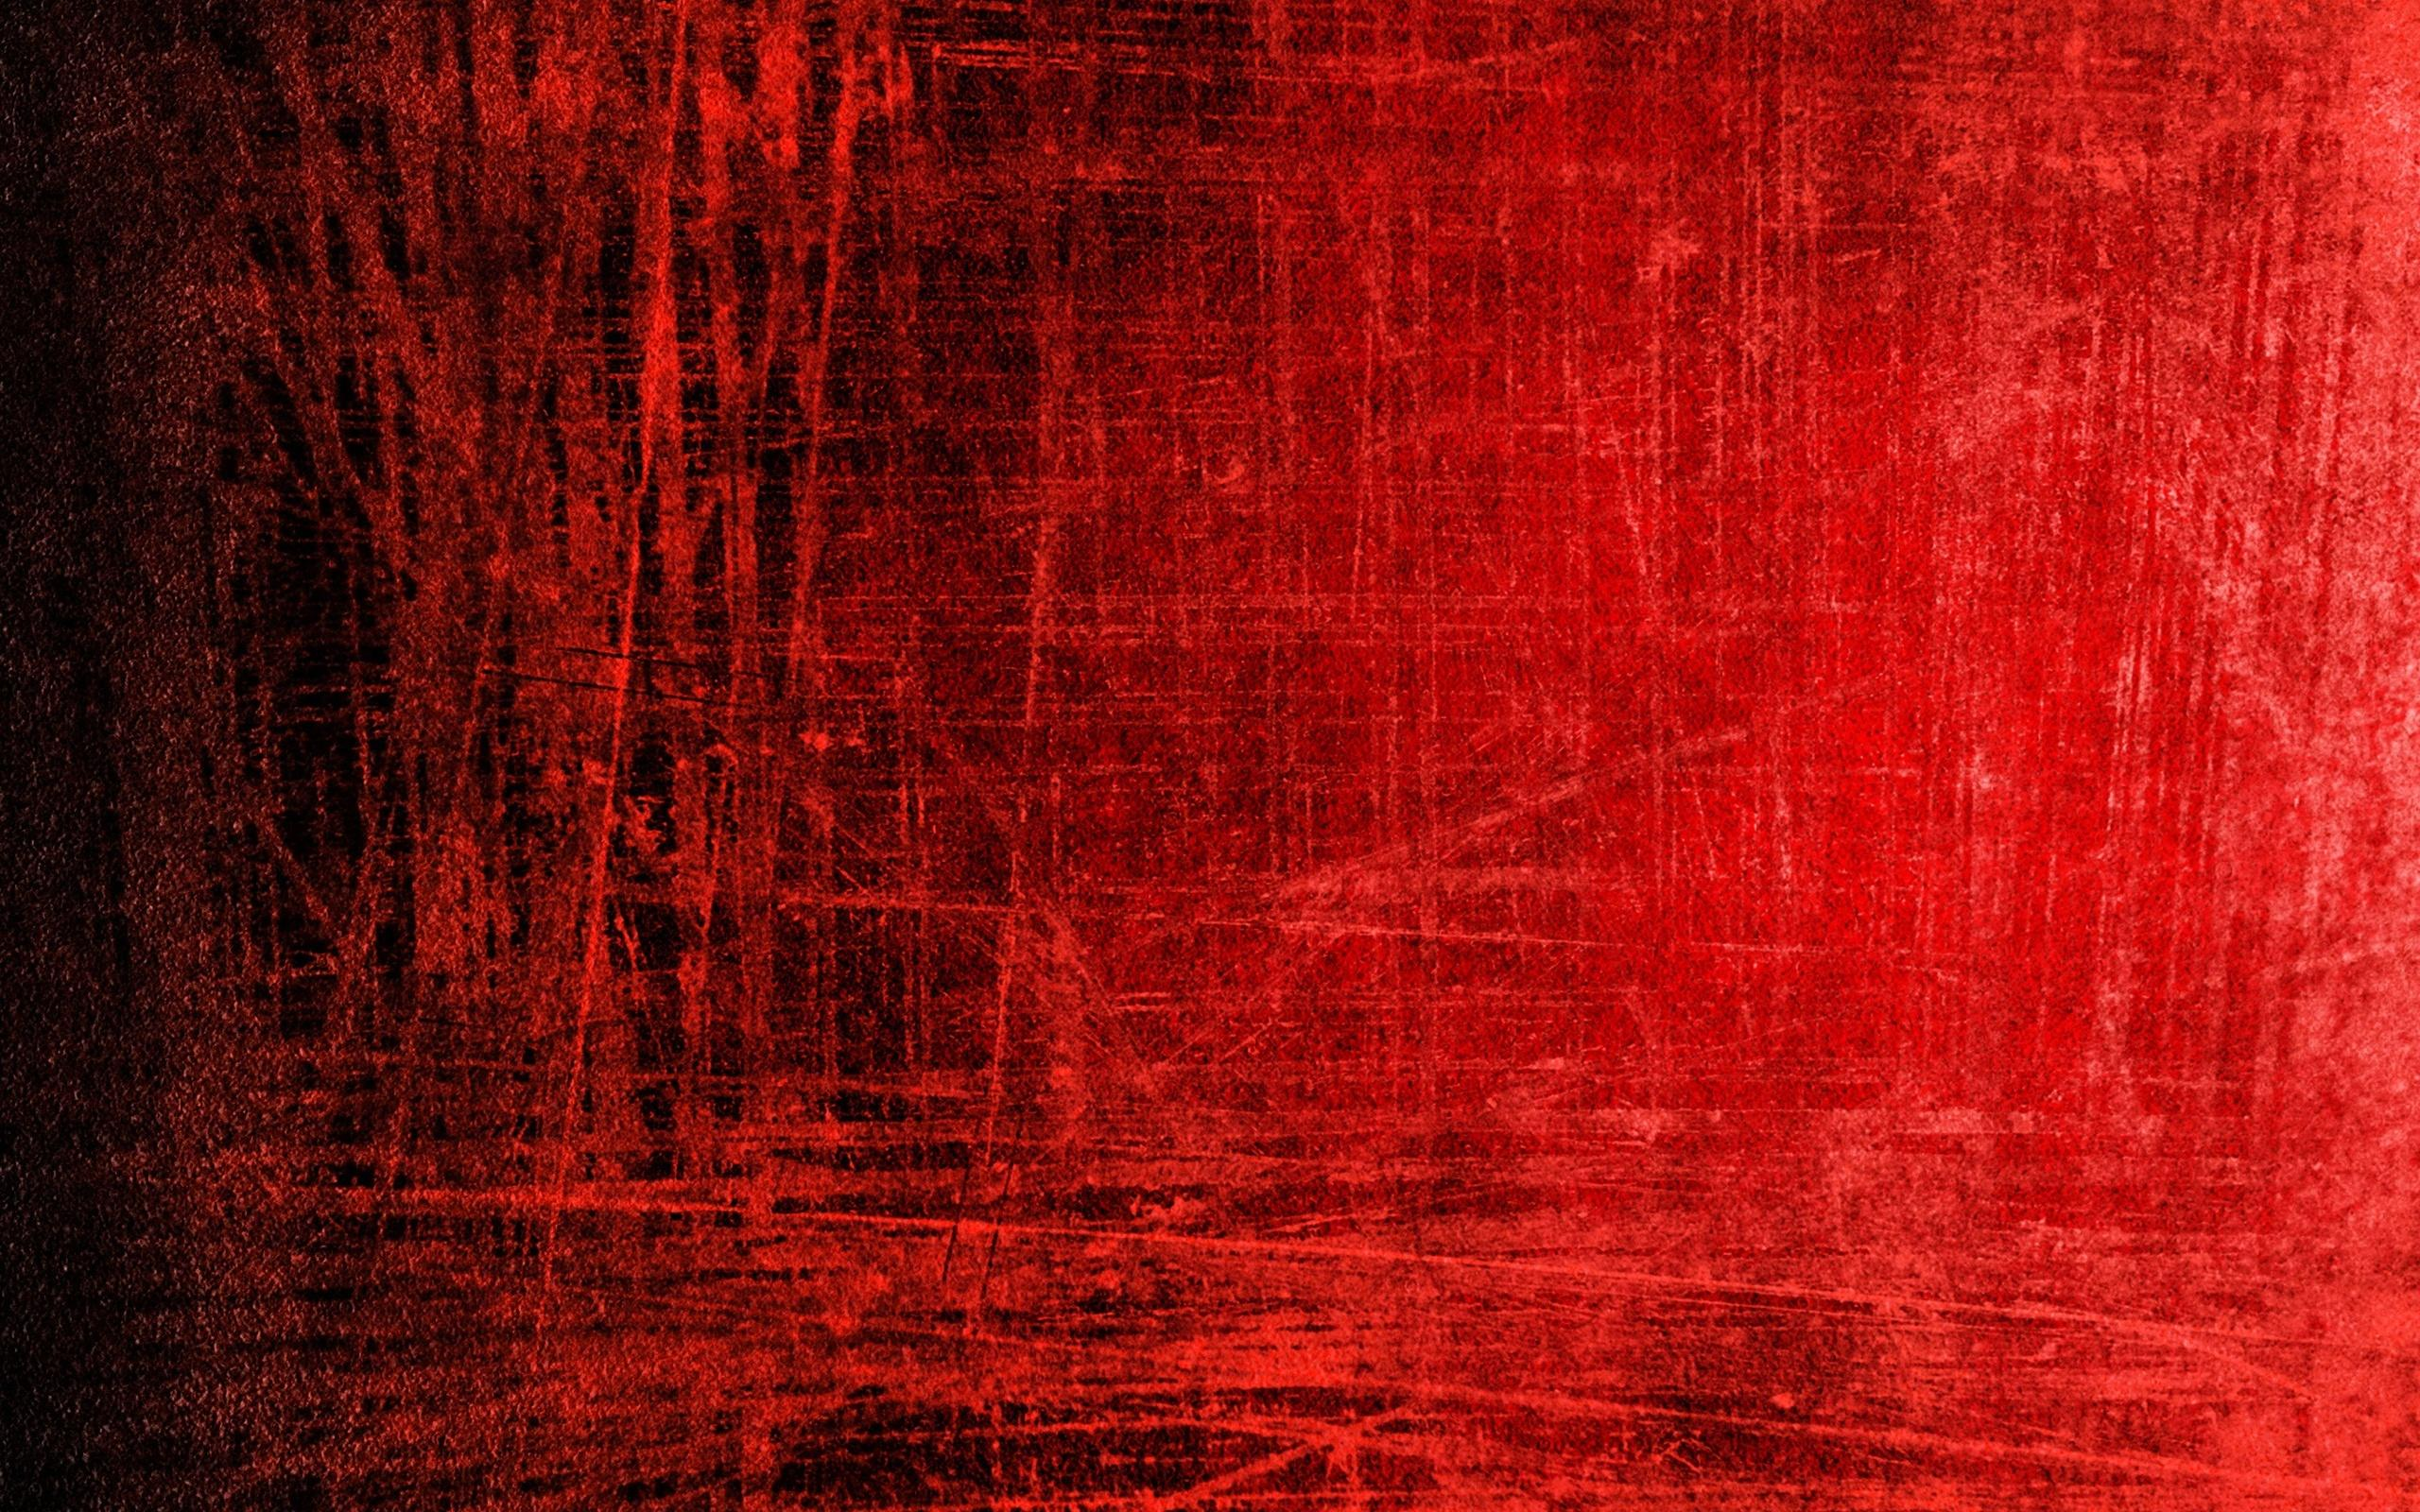 Red Background Images